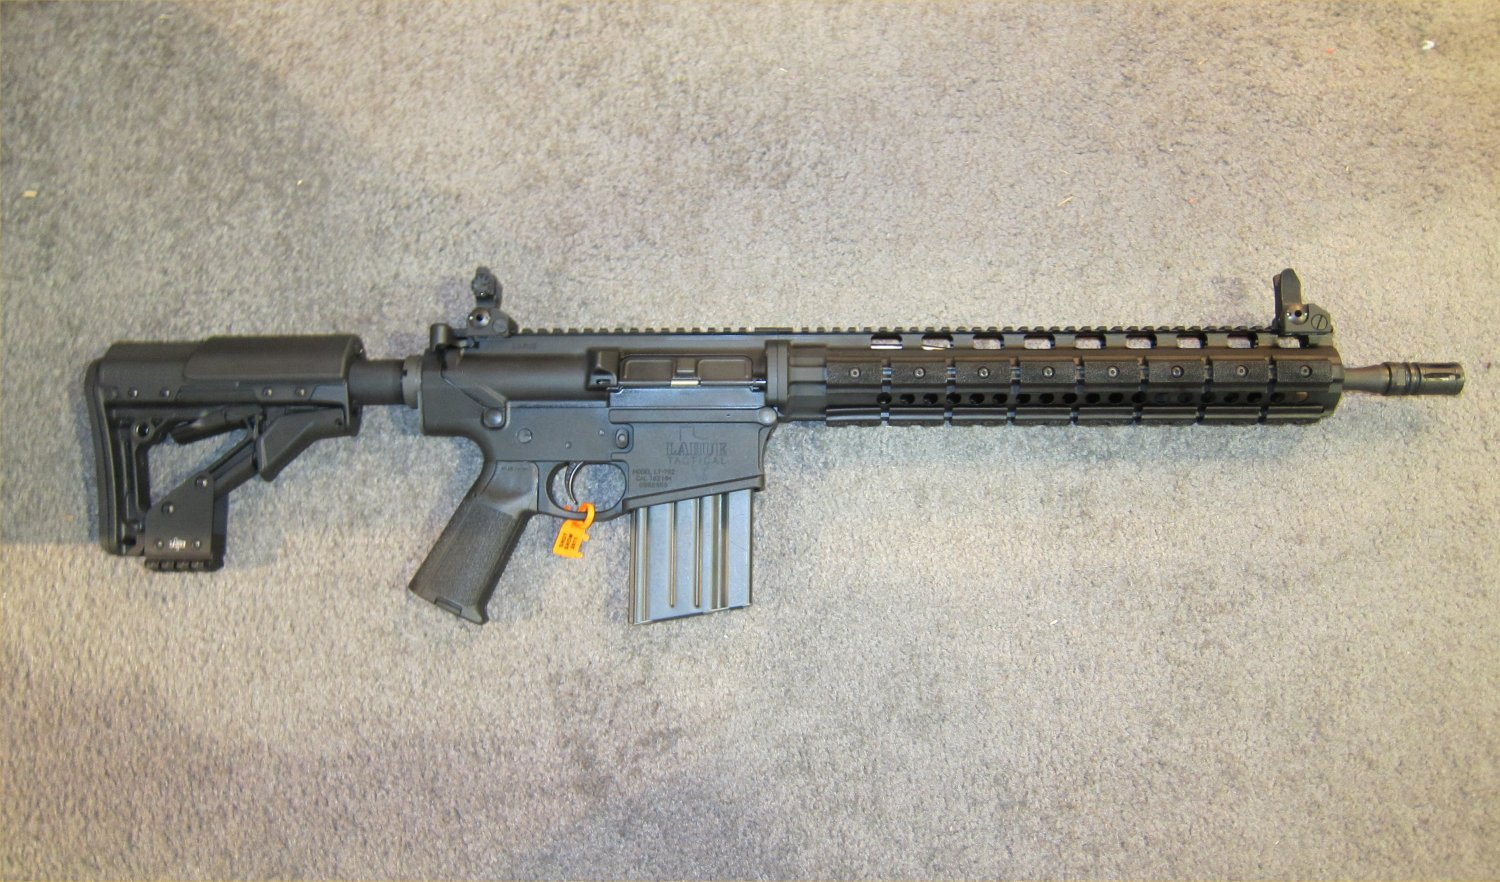 LaRue Tactical OBR 7.62 PREDATAR Series Tactical AR Carbine at SHOT Show 2011 2 <!  :en  >LaRue Tactical PredatAR Series Lightweight OBR 5.56 and OBR 7.62 Tactical AR Carbines Debut at SHOT Show 2011 (Video!)<!  :  >